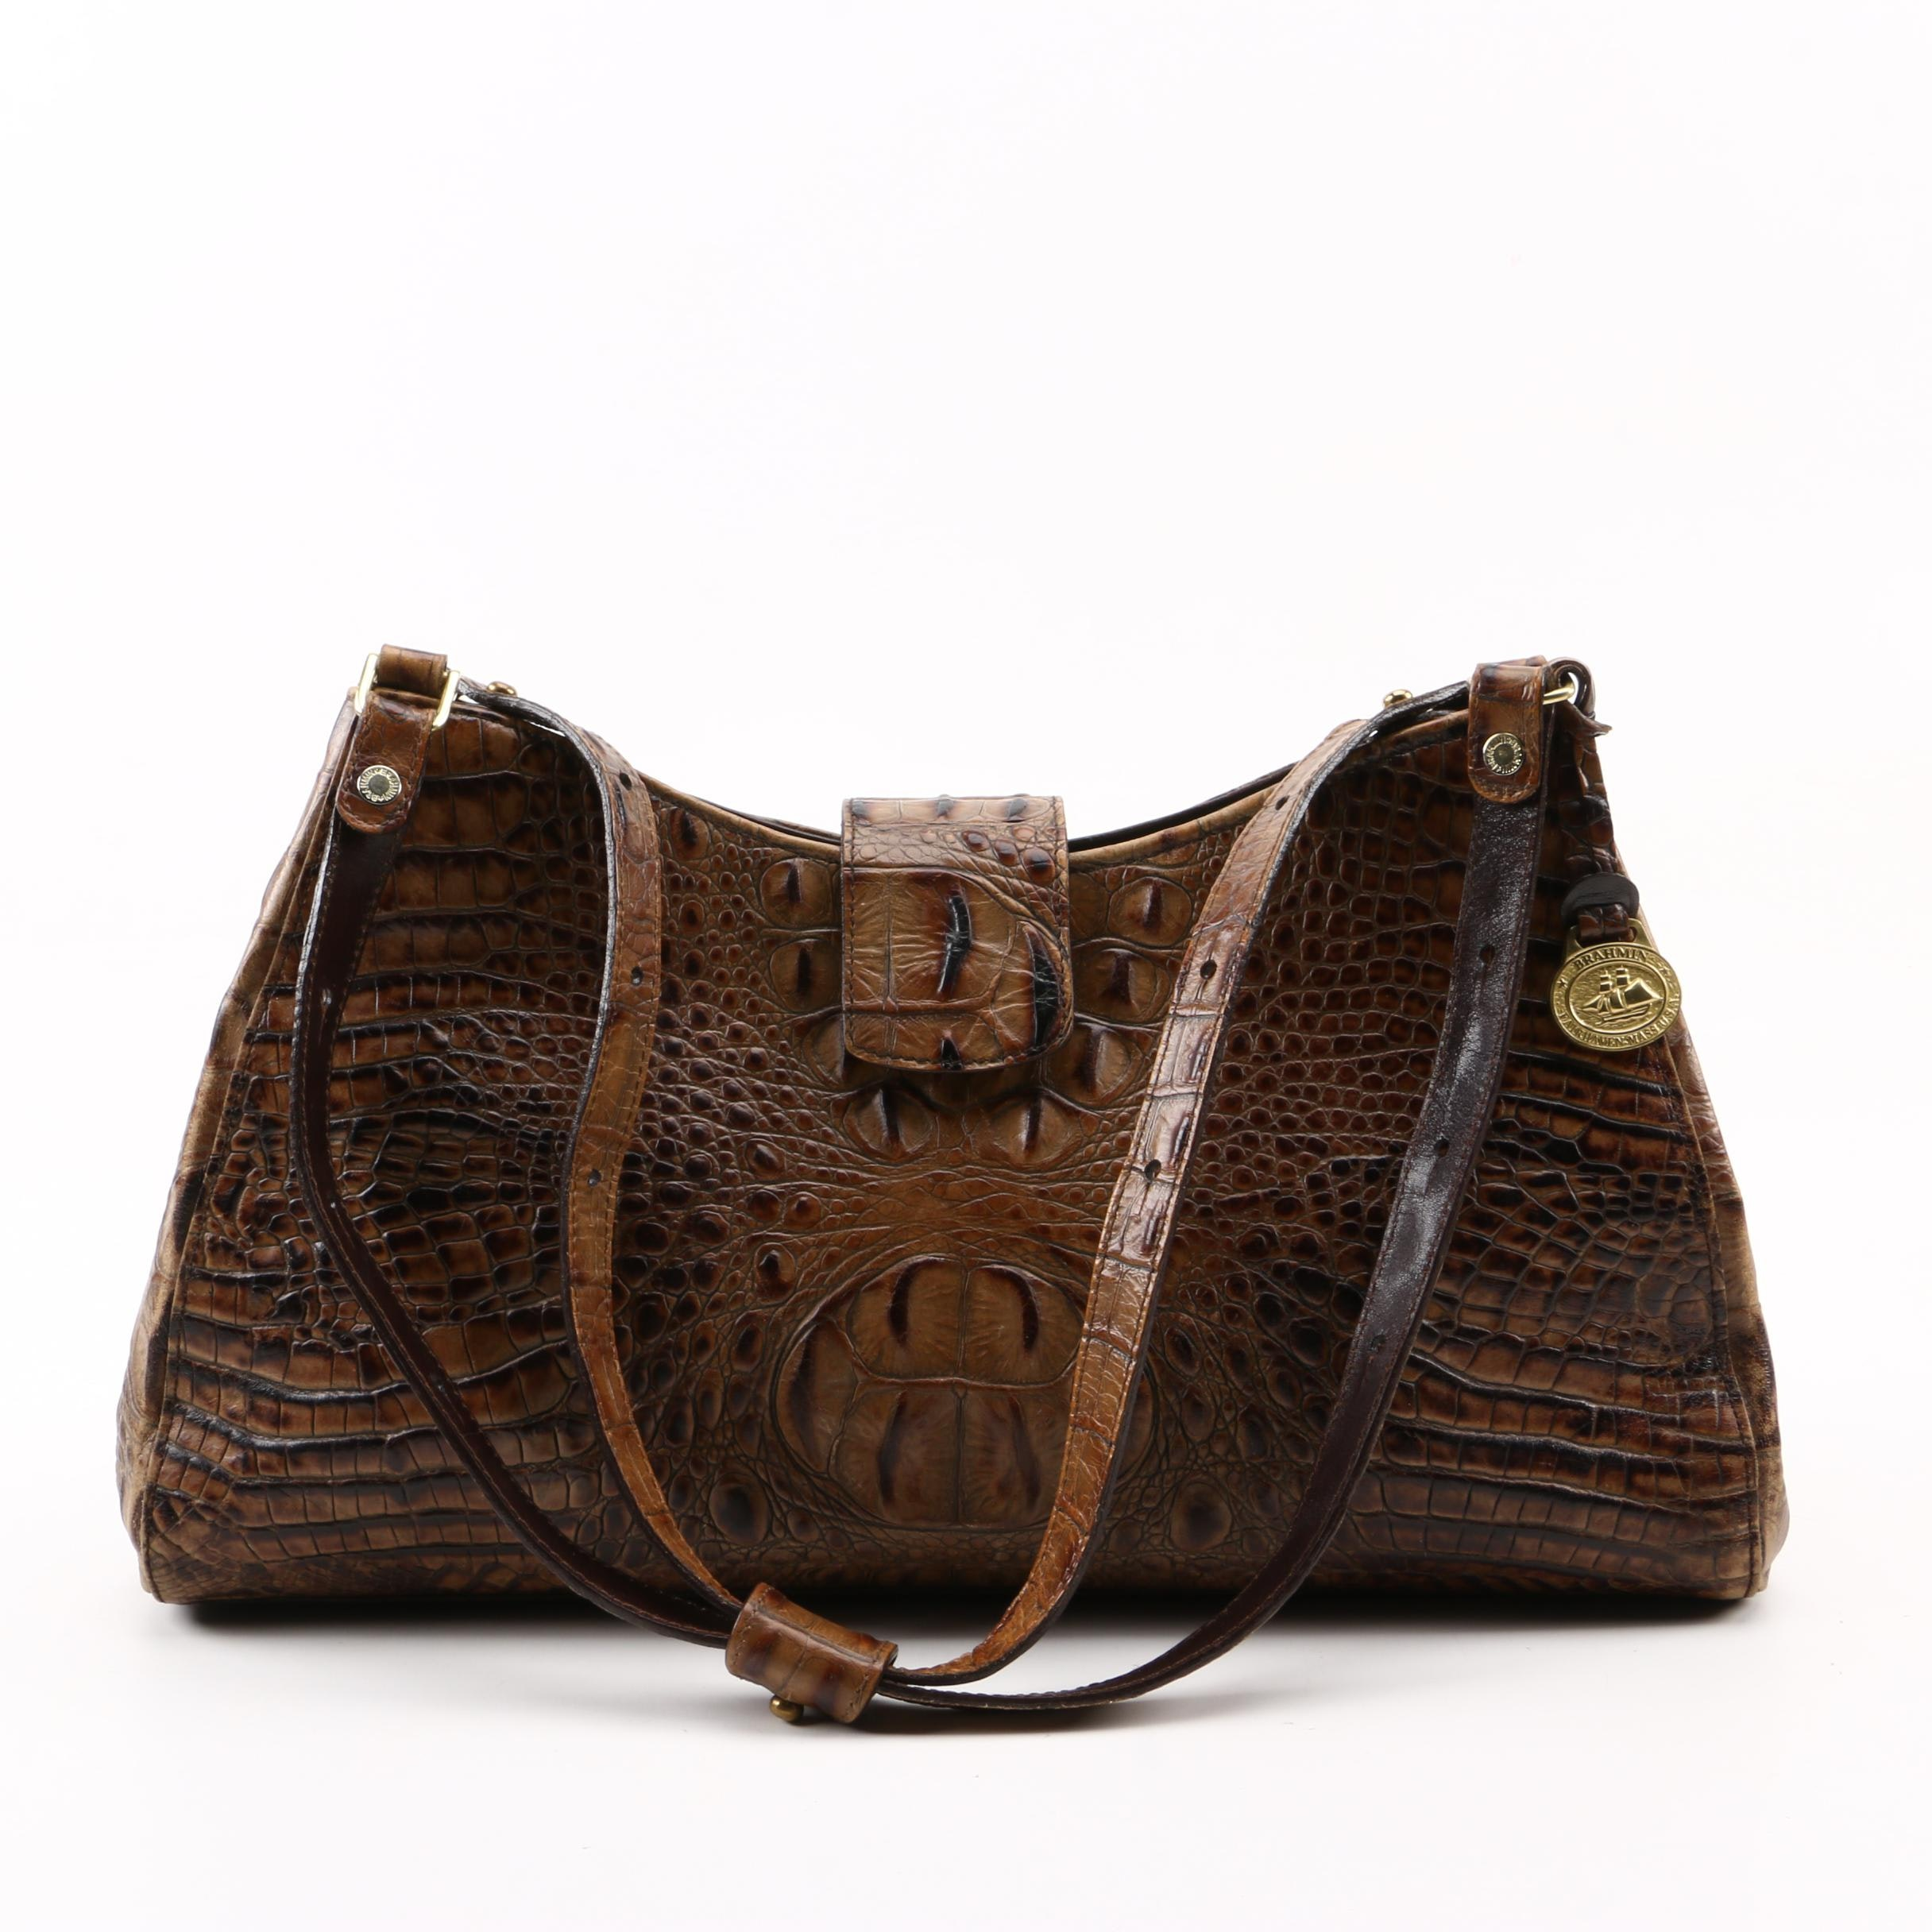 Brahmin Crocodile Embossed Brown Leather Shoulder Bag